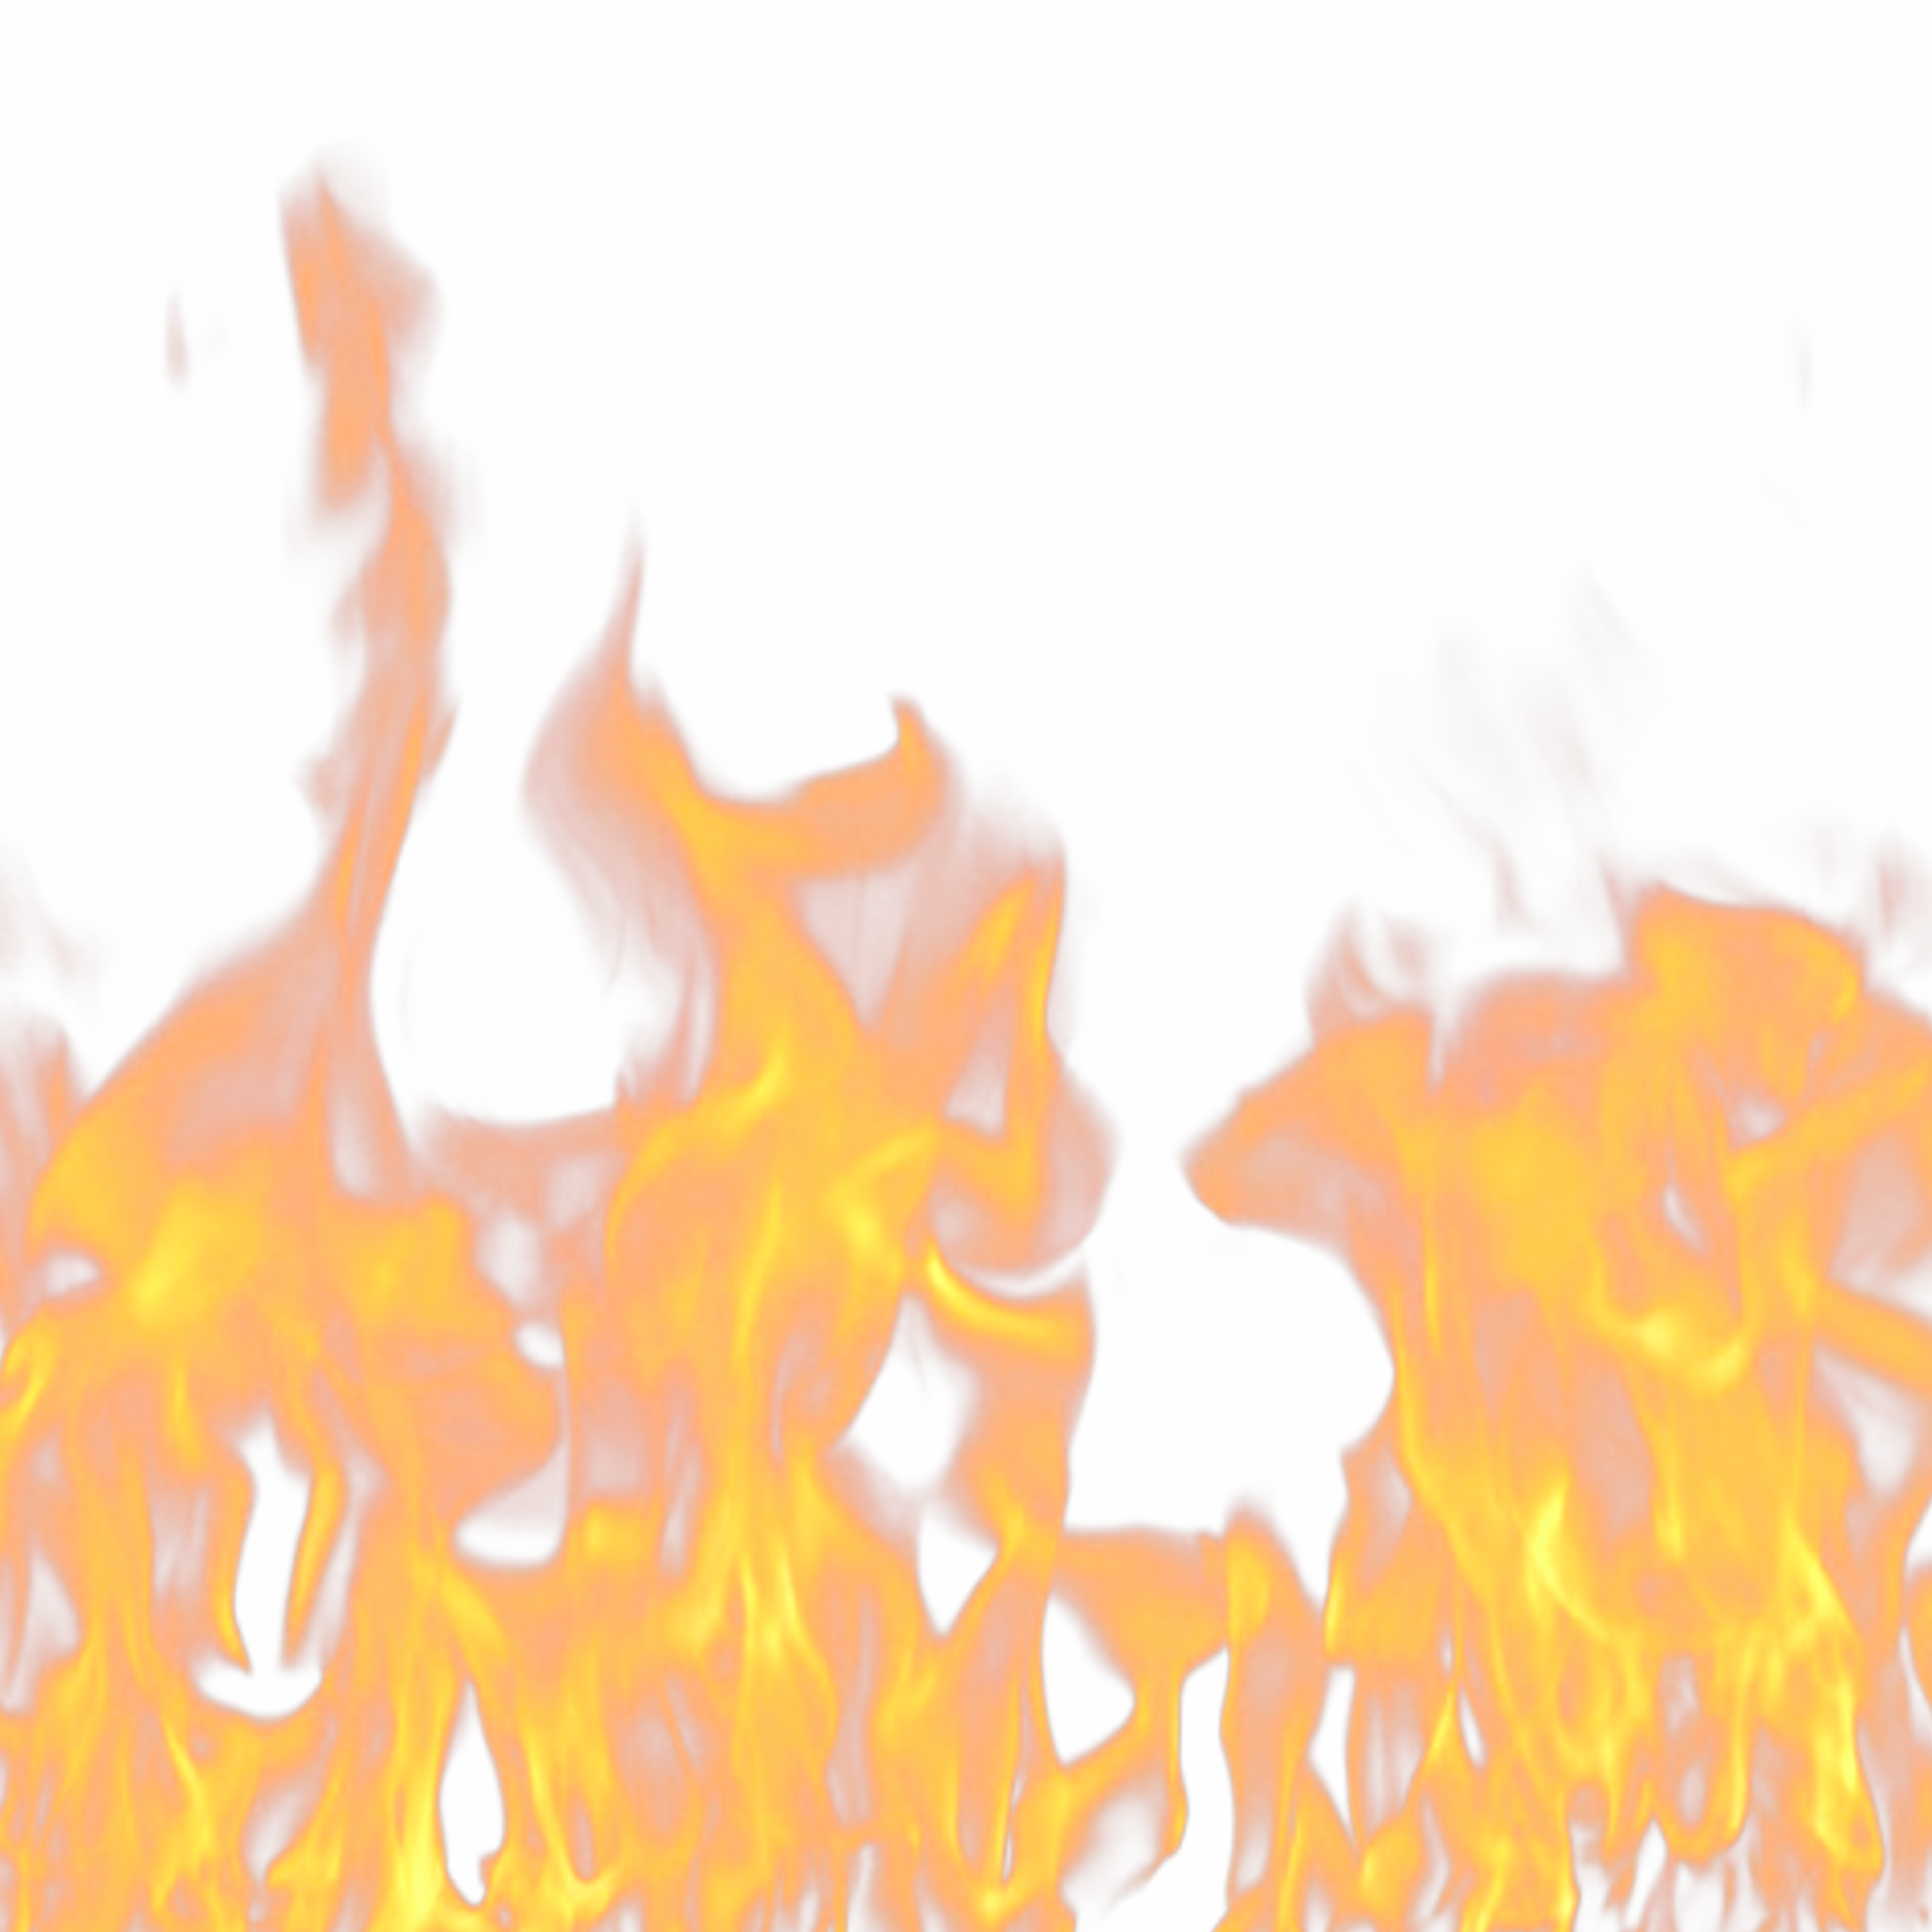 Png picture gallery yopriceville. Flames clipart